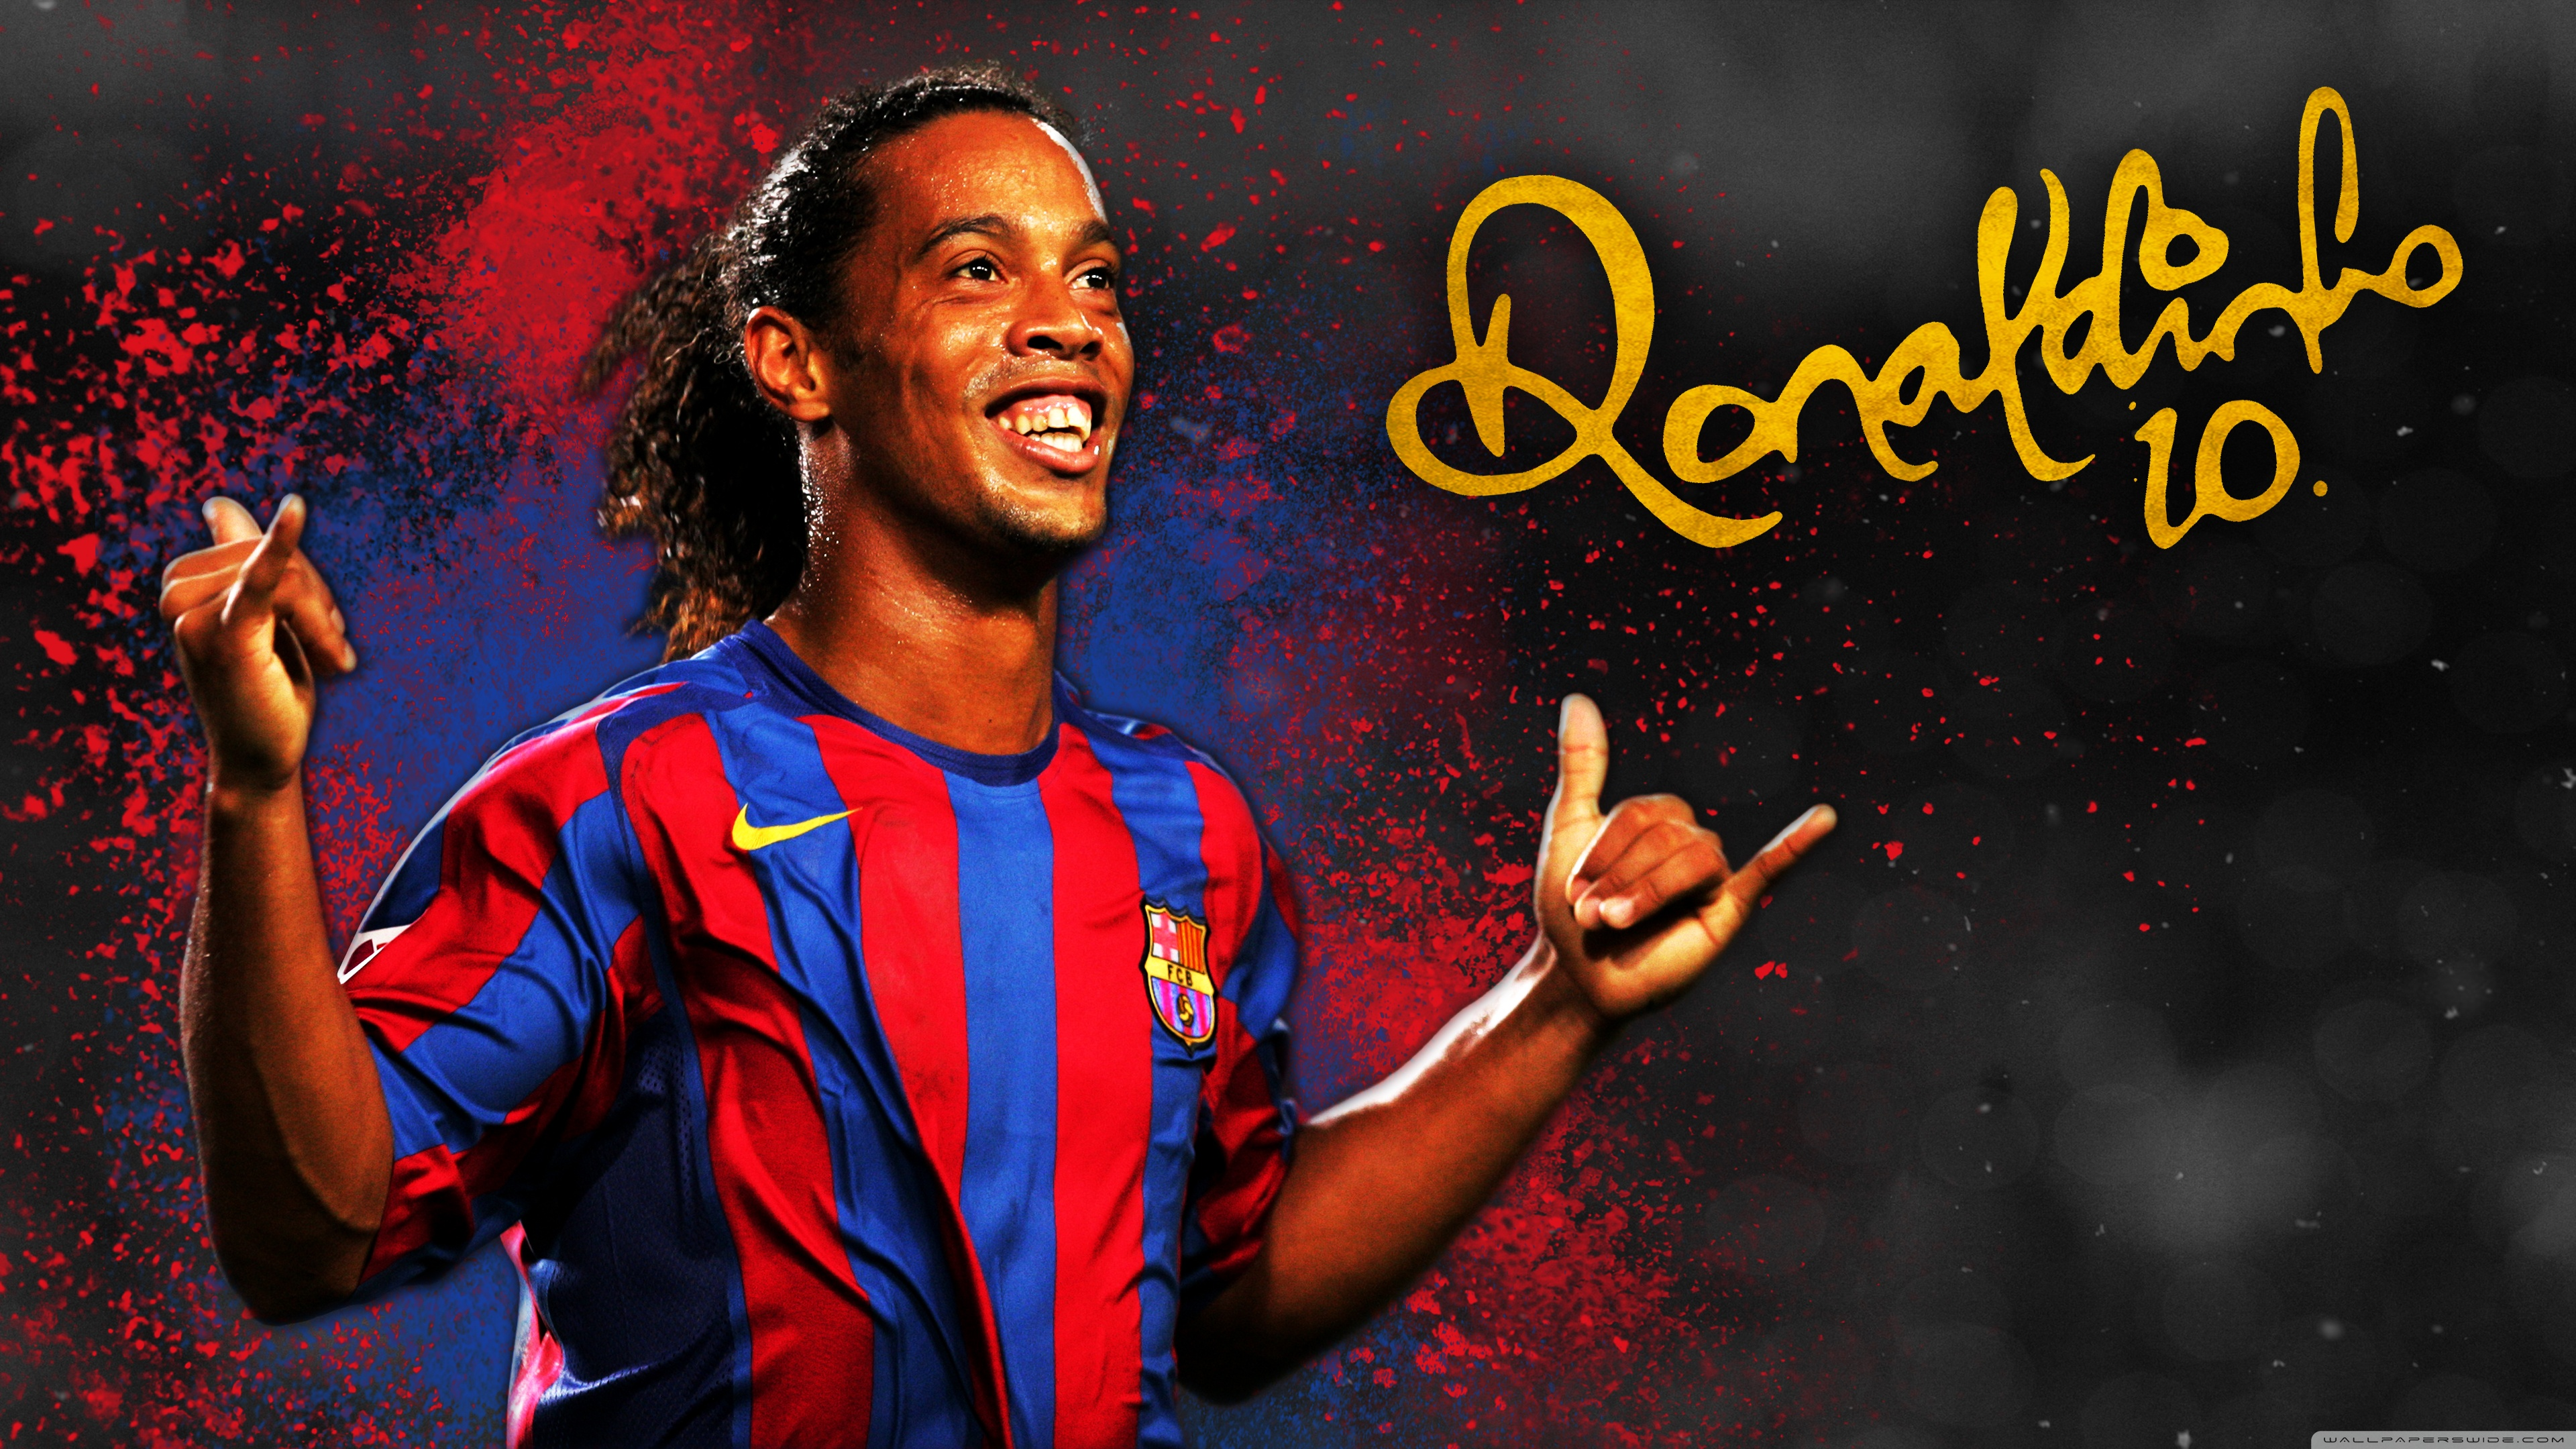 Barcelona Wallpaper Iphone 6 Ronaldinho Barcelona 4k Hd Desktop Wallpaper For 4k Ultra